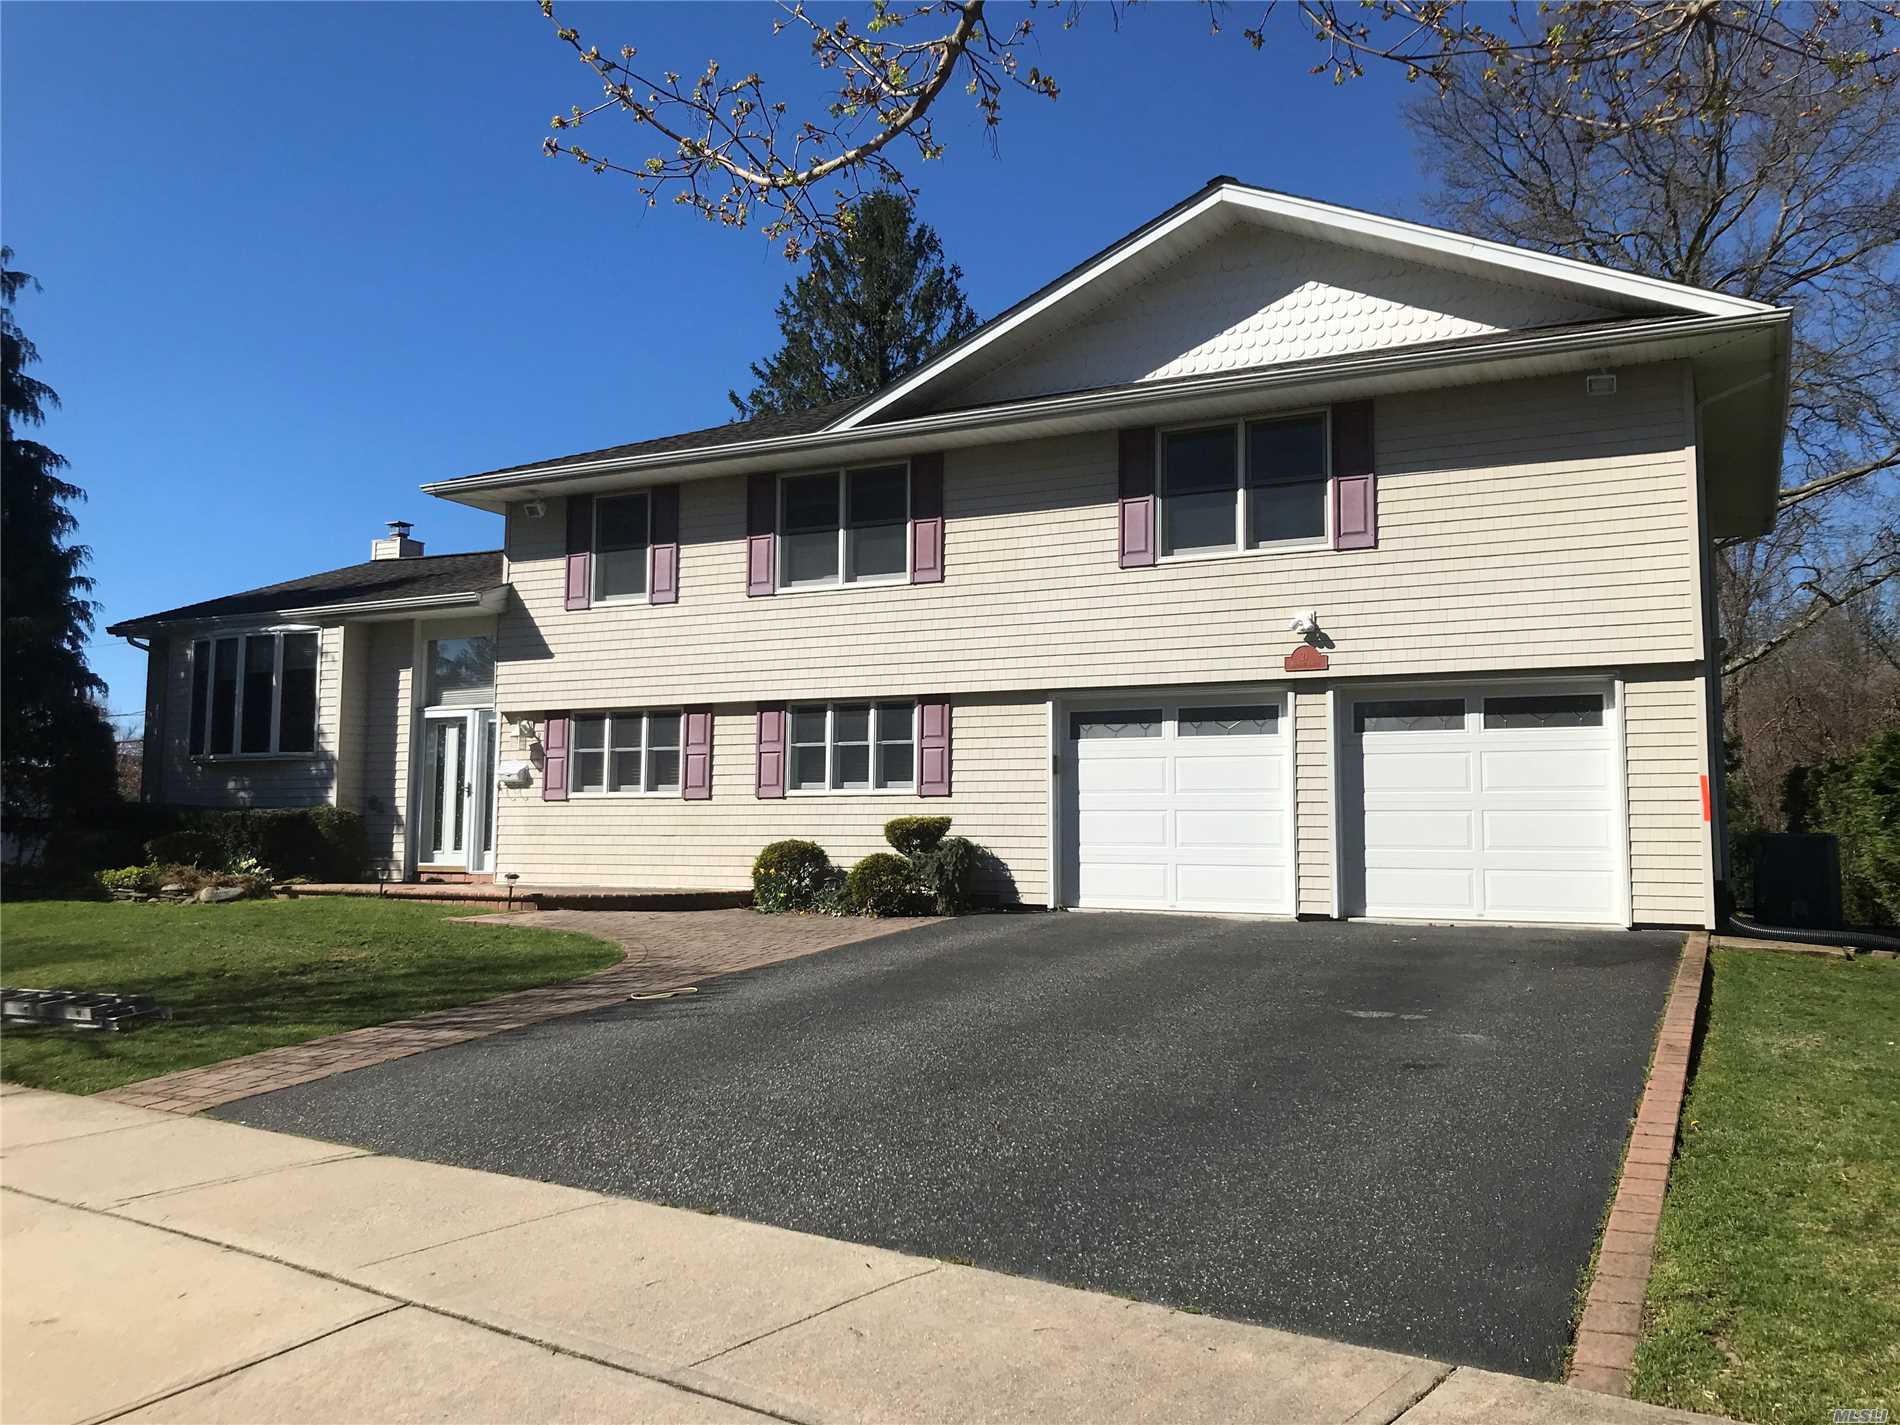 21 Michael Dr - Old Bethpage, New York